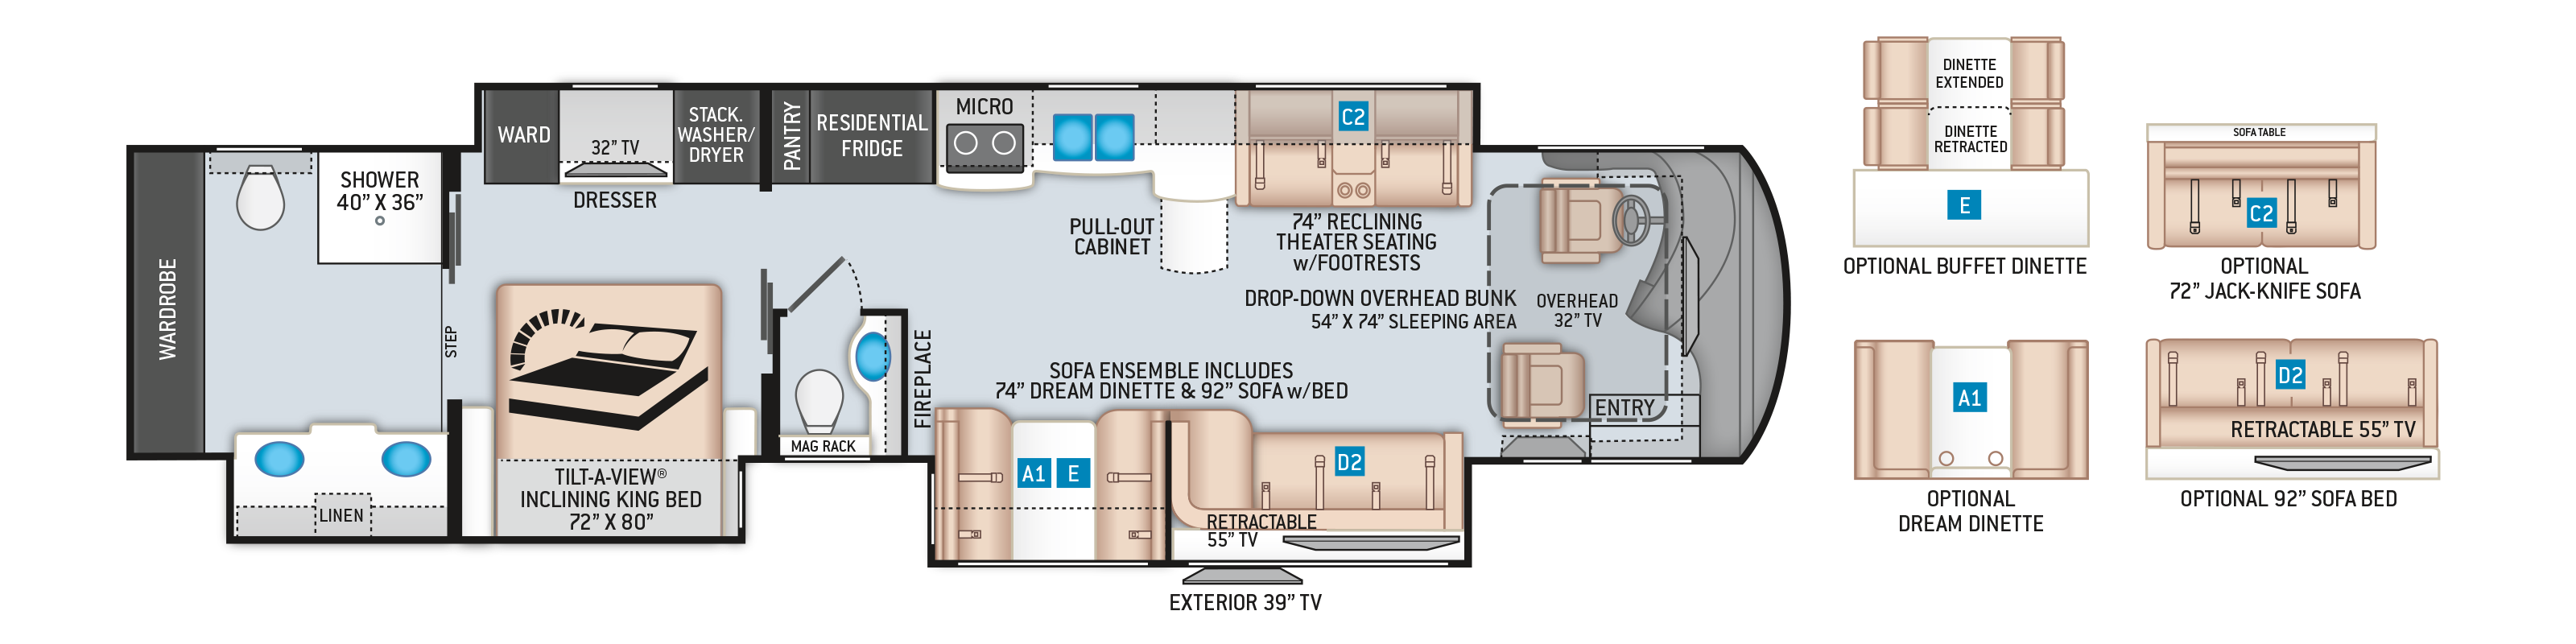 Tuscany Class A Diesel Pusher Motorhome 45MX Floor Plan